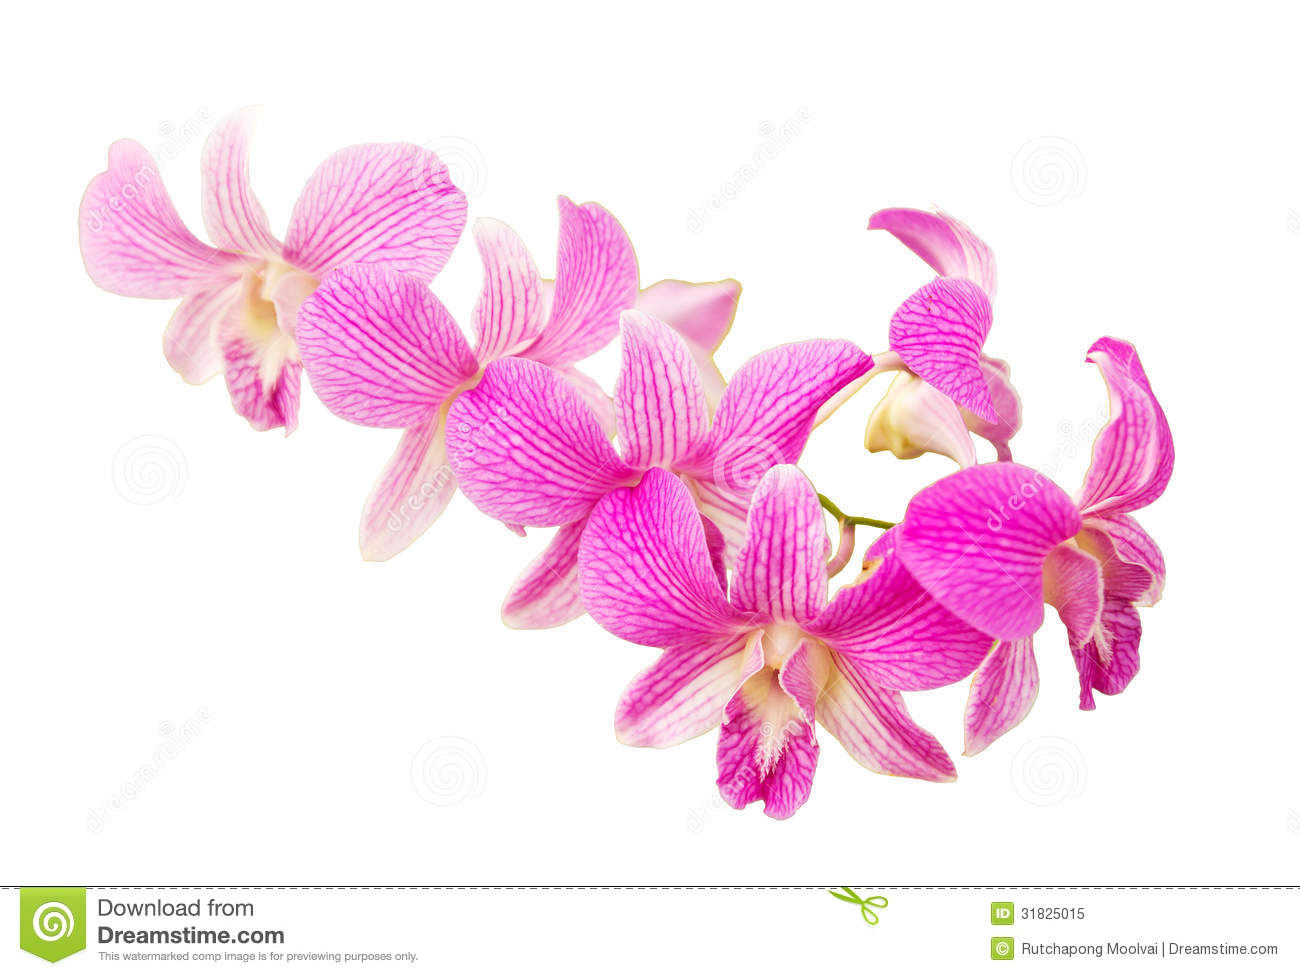 Pink Orchid Flower Royalty Free Stock Photo - Image: 31825015